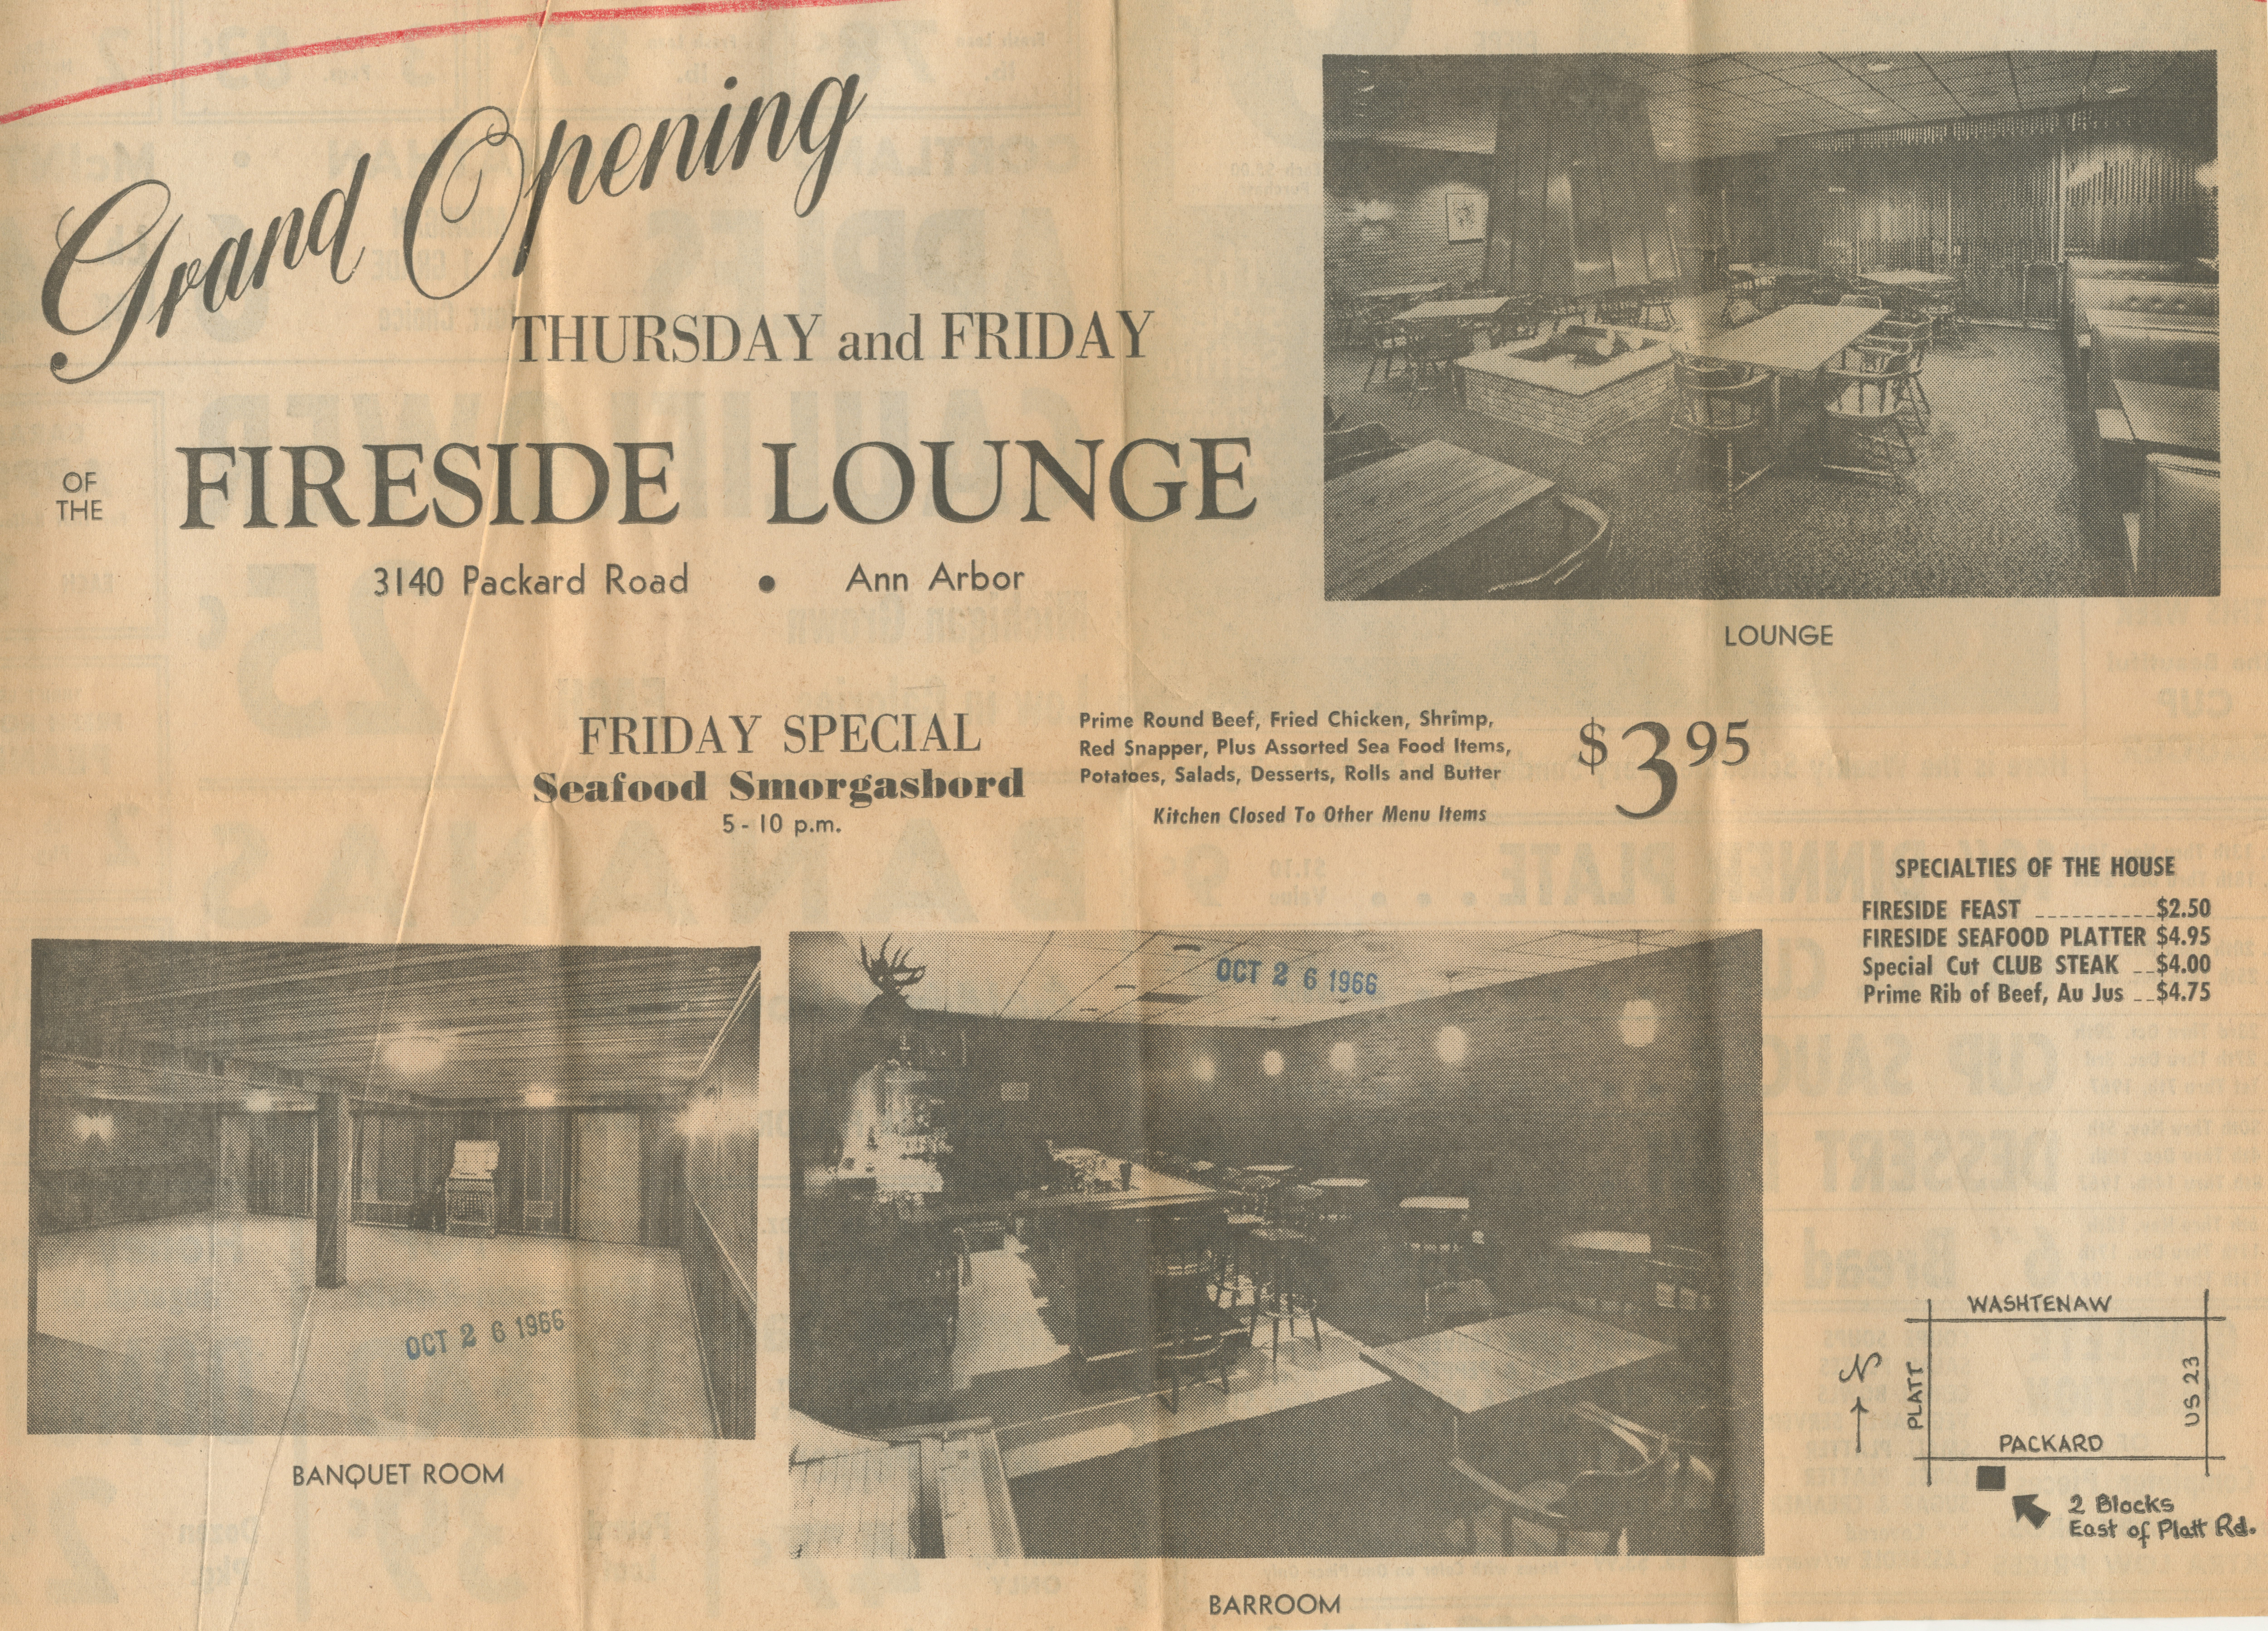 Fireside Lounge [advertisement] image